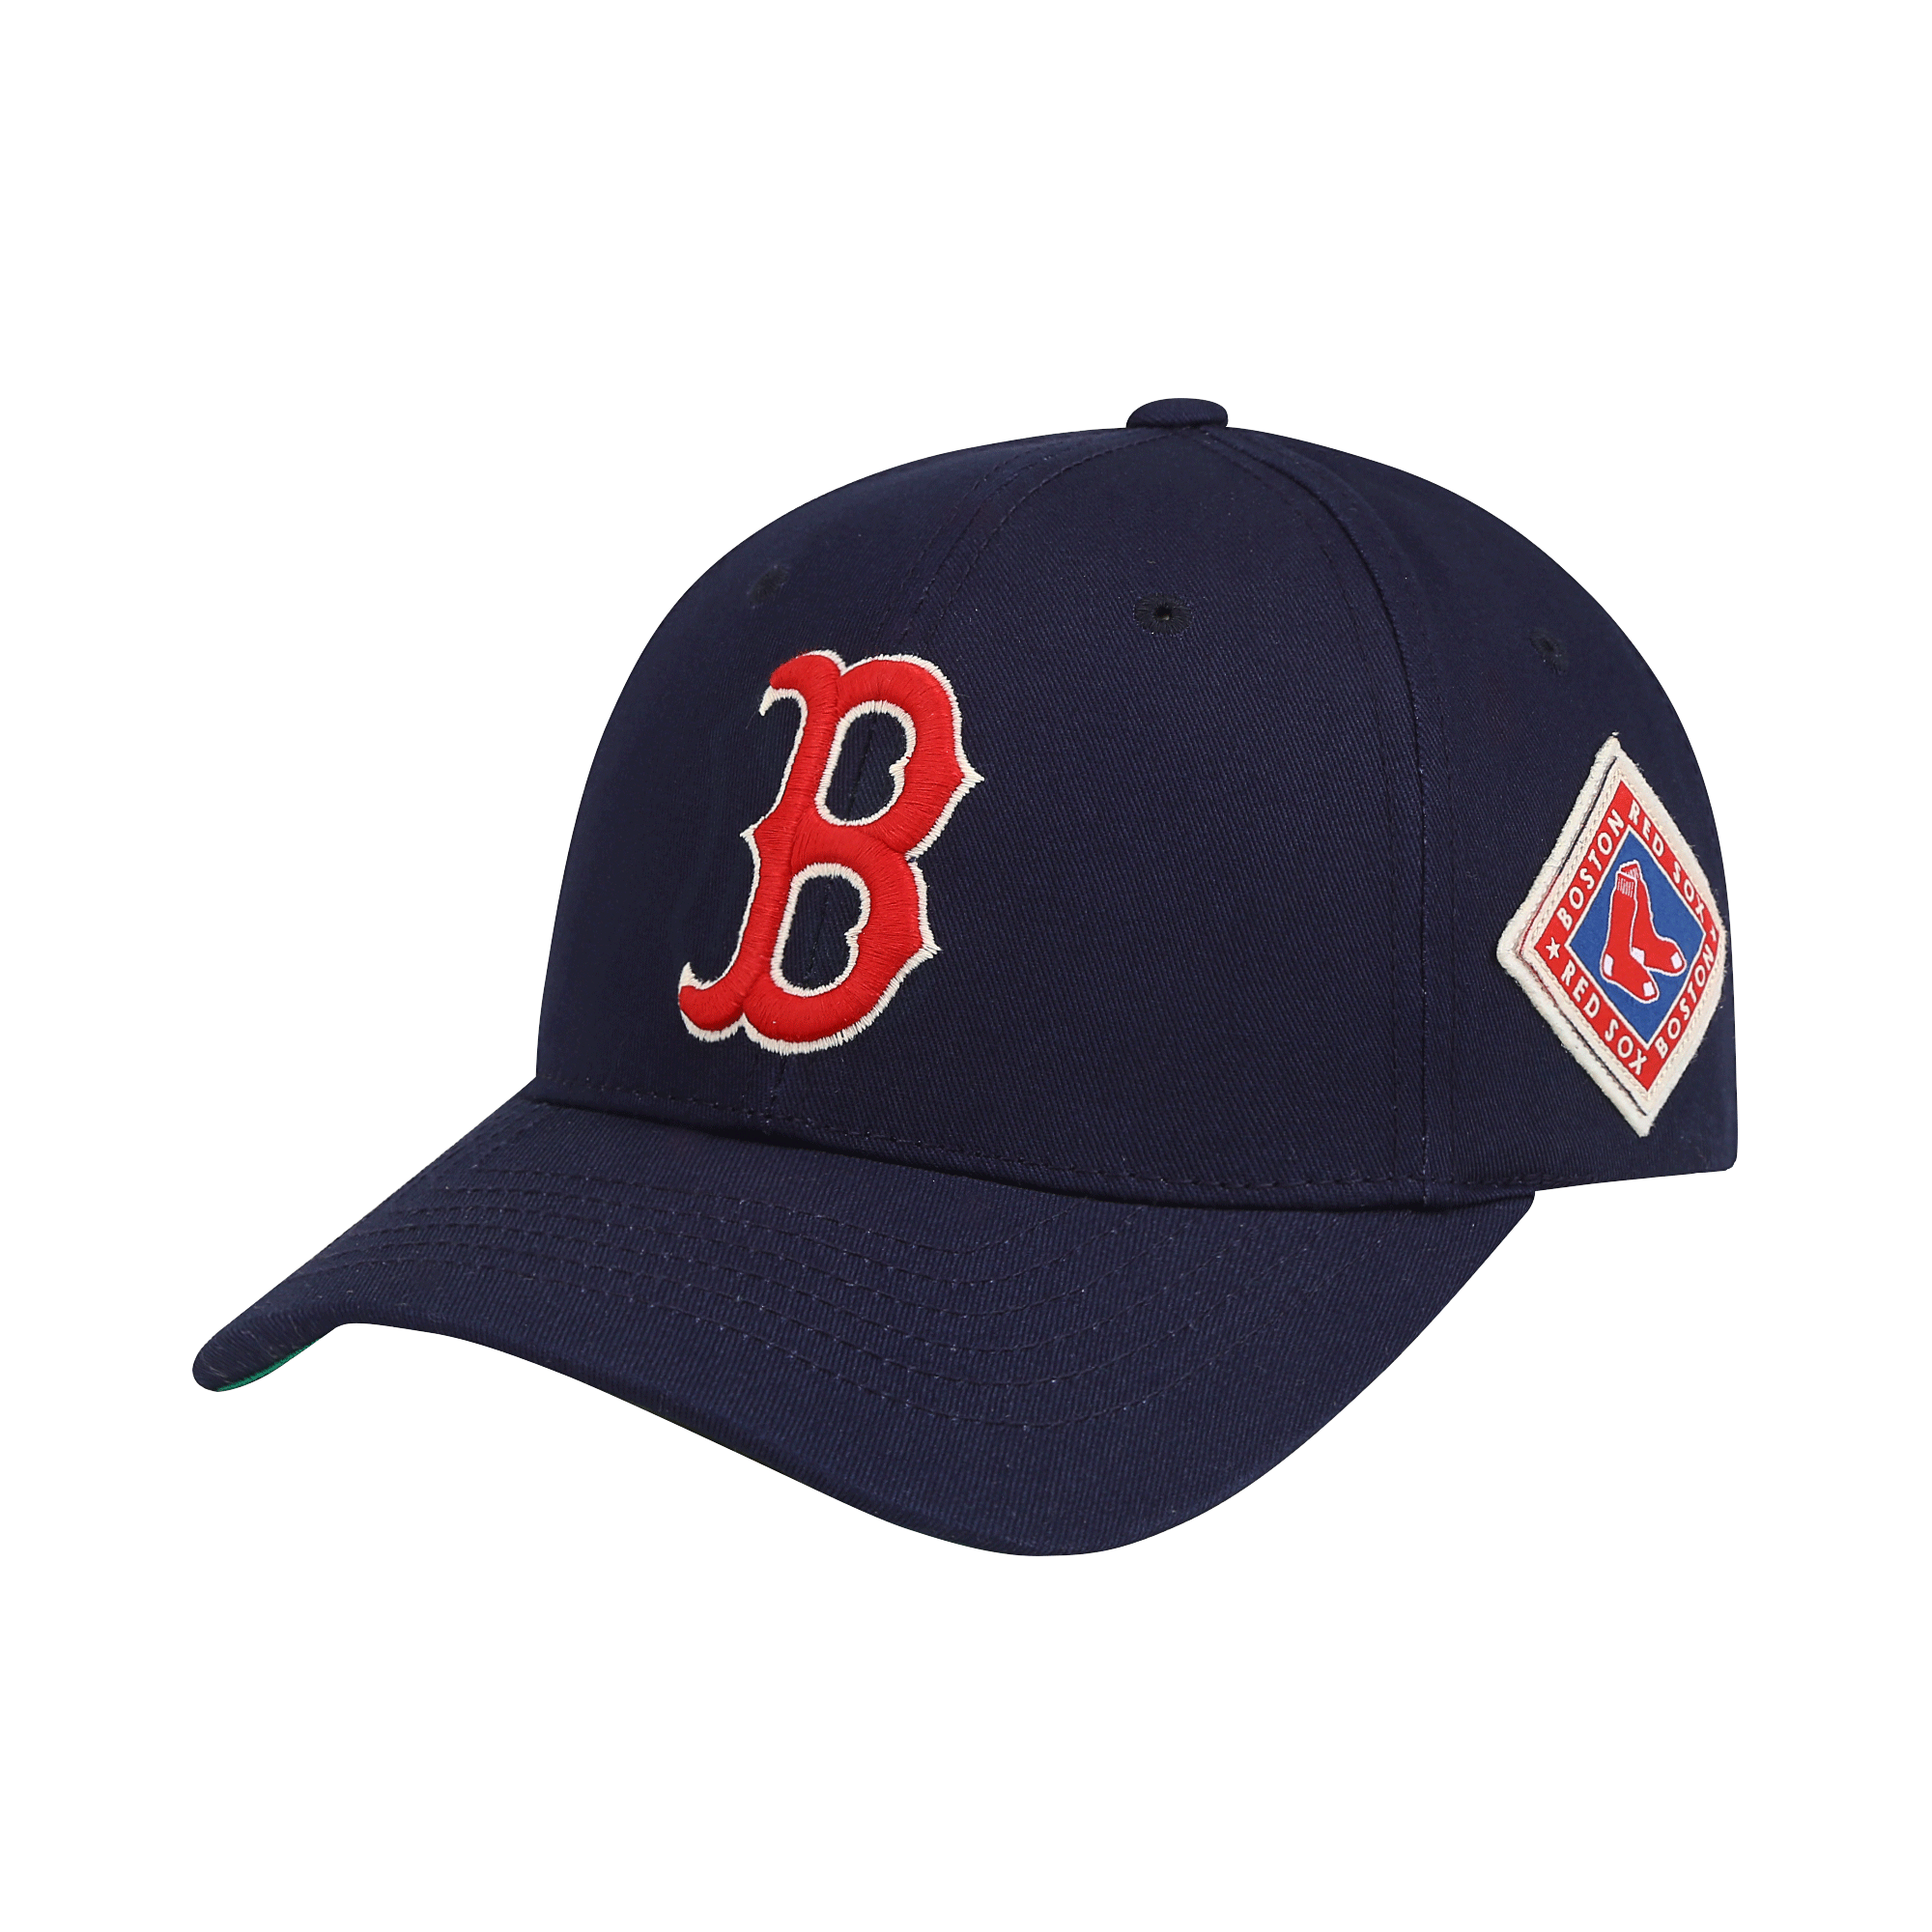 BOSTON RED SOX CHUCK STAMP ADJUSTABLE CAP